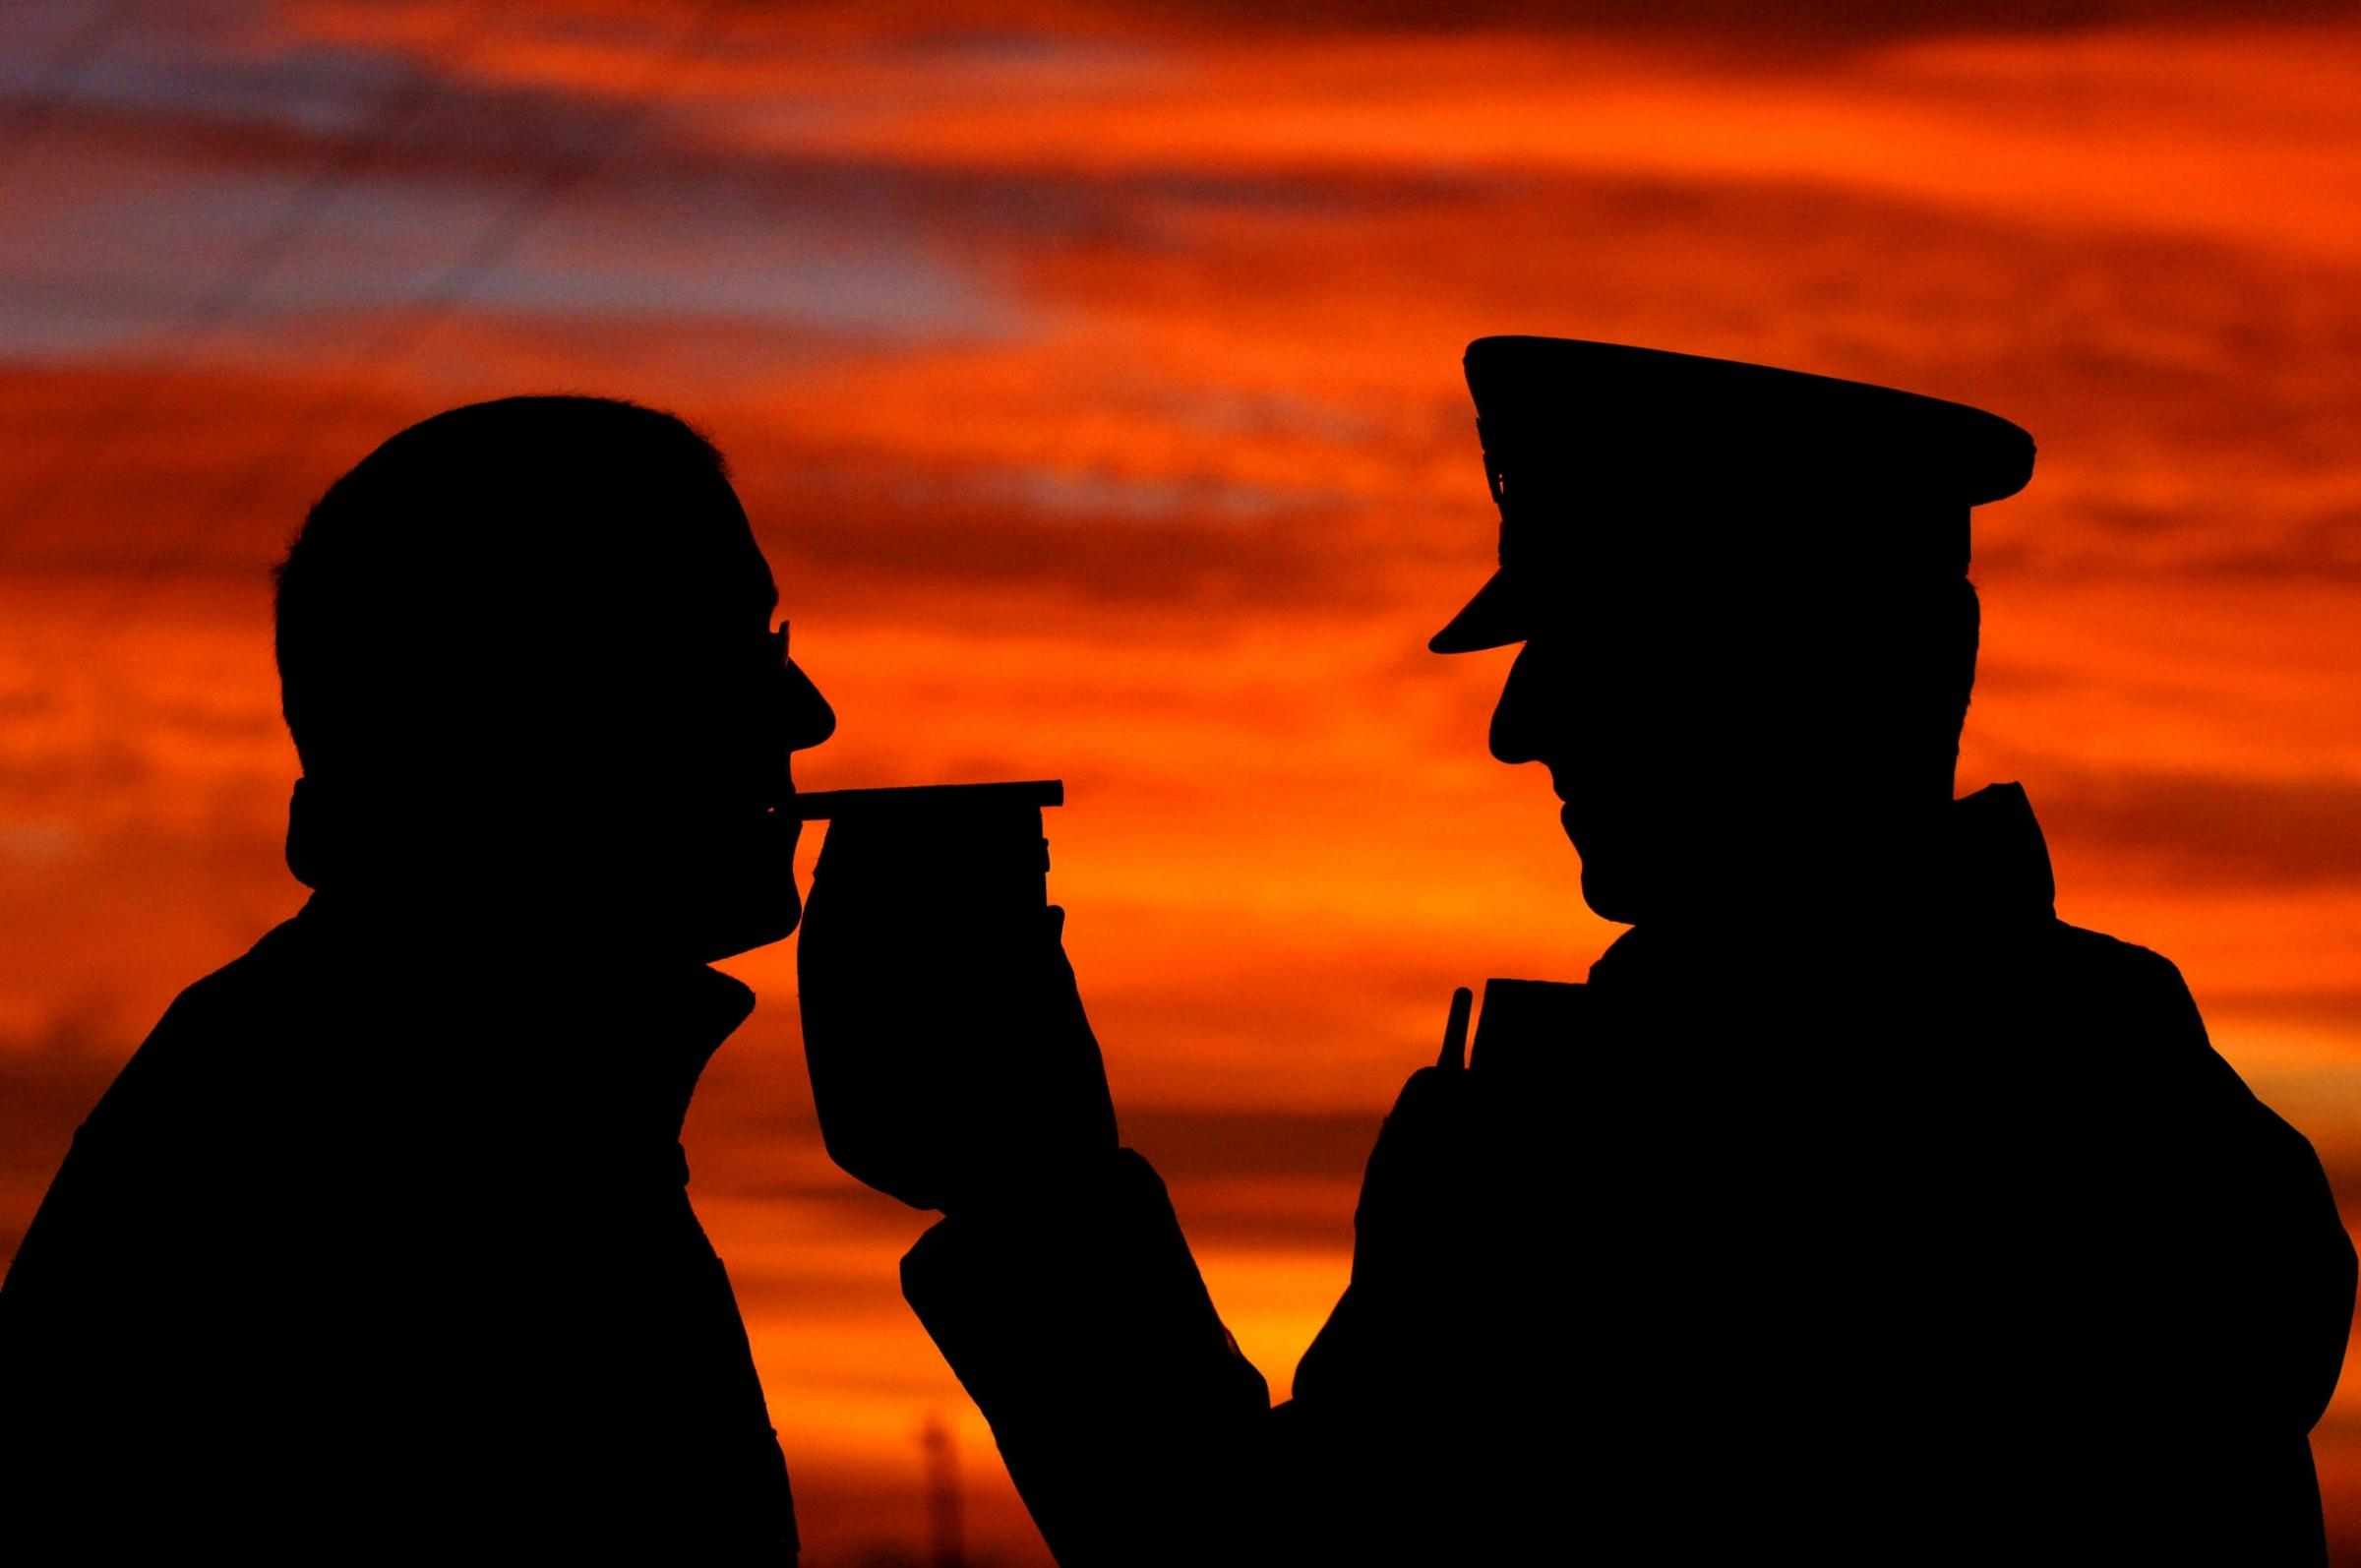 A motorist has been banned for drink-driving